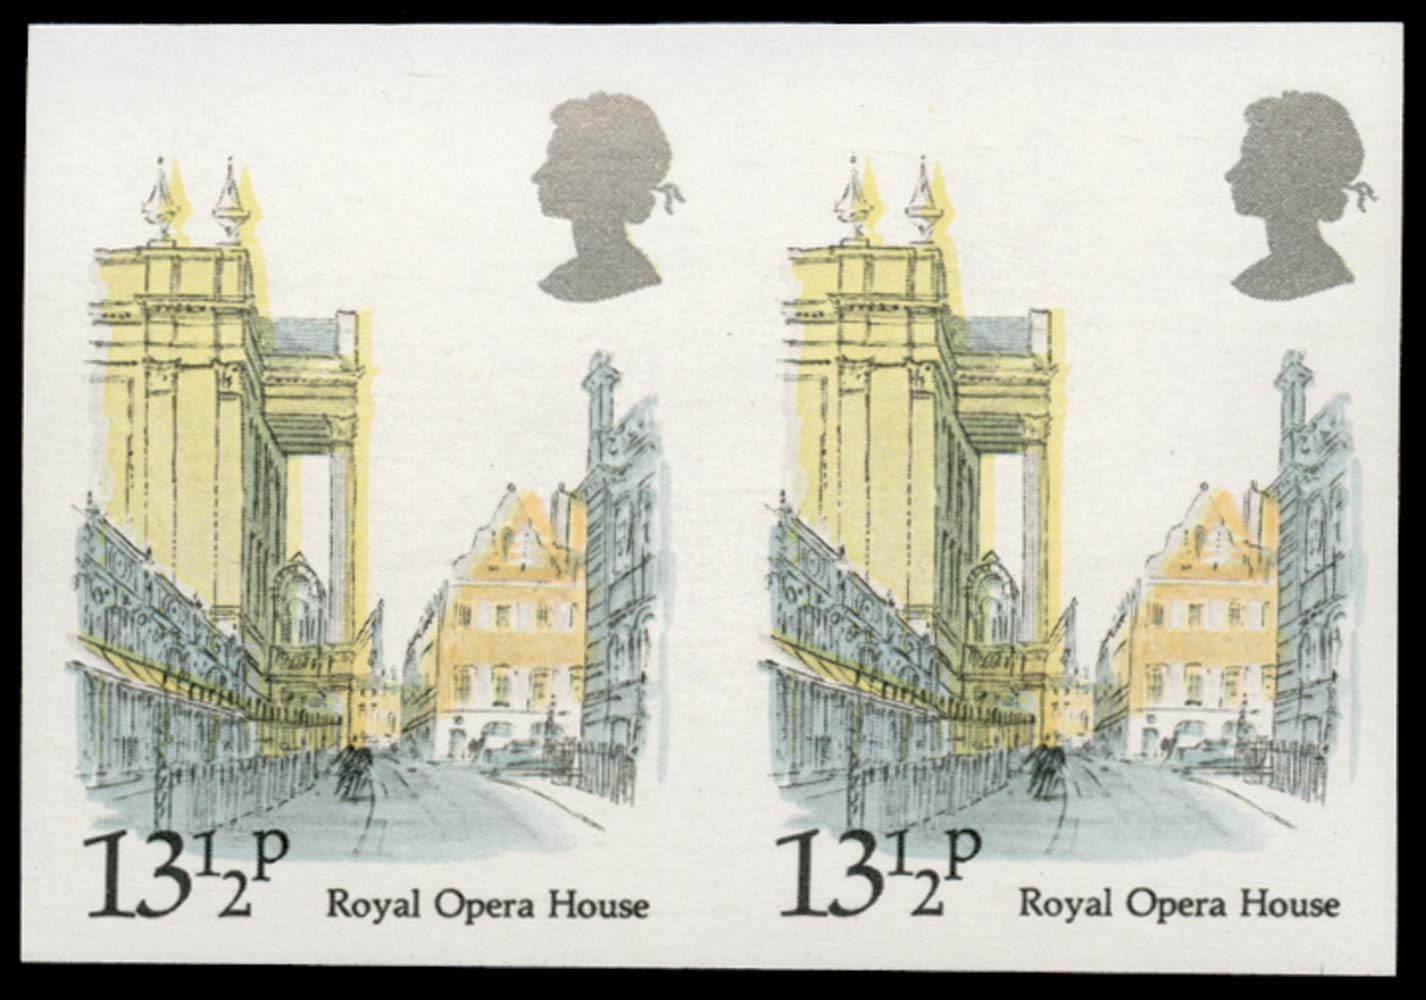 GB 1980  SG1122a Mint - imperforate (pair)